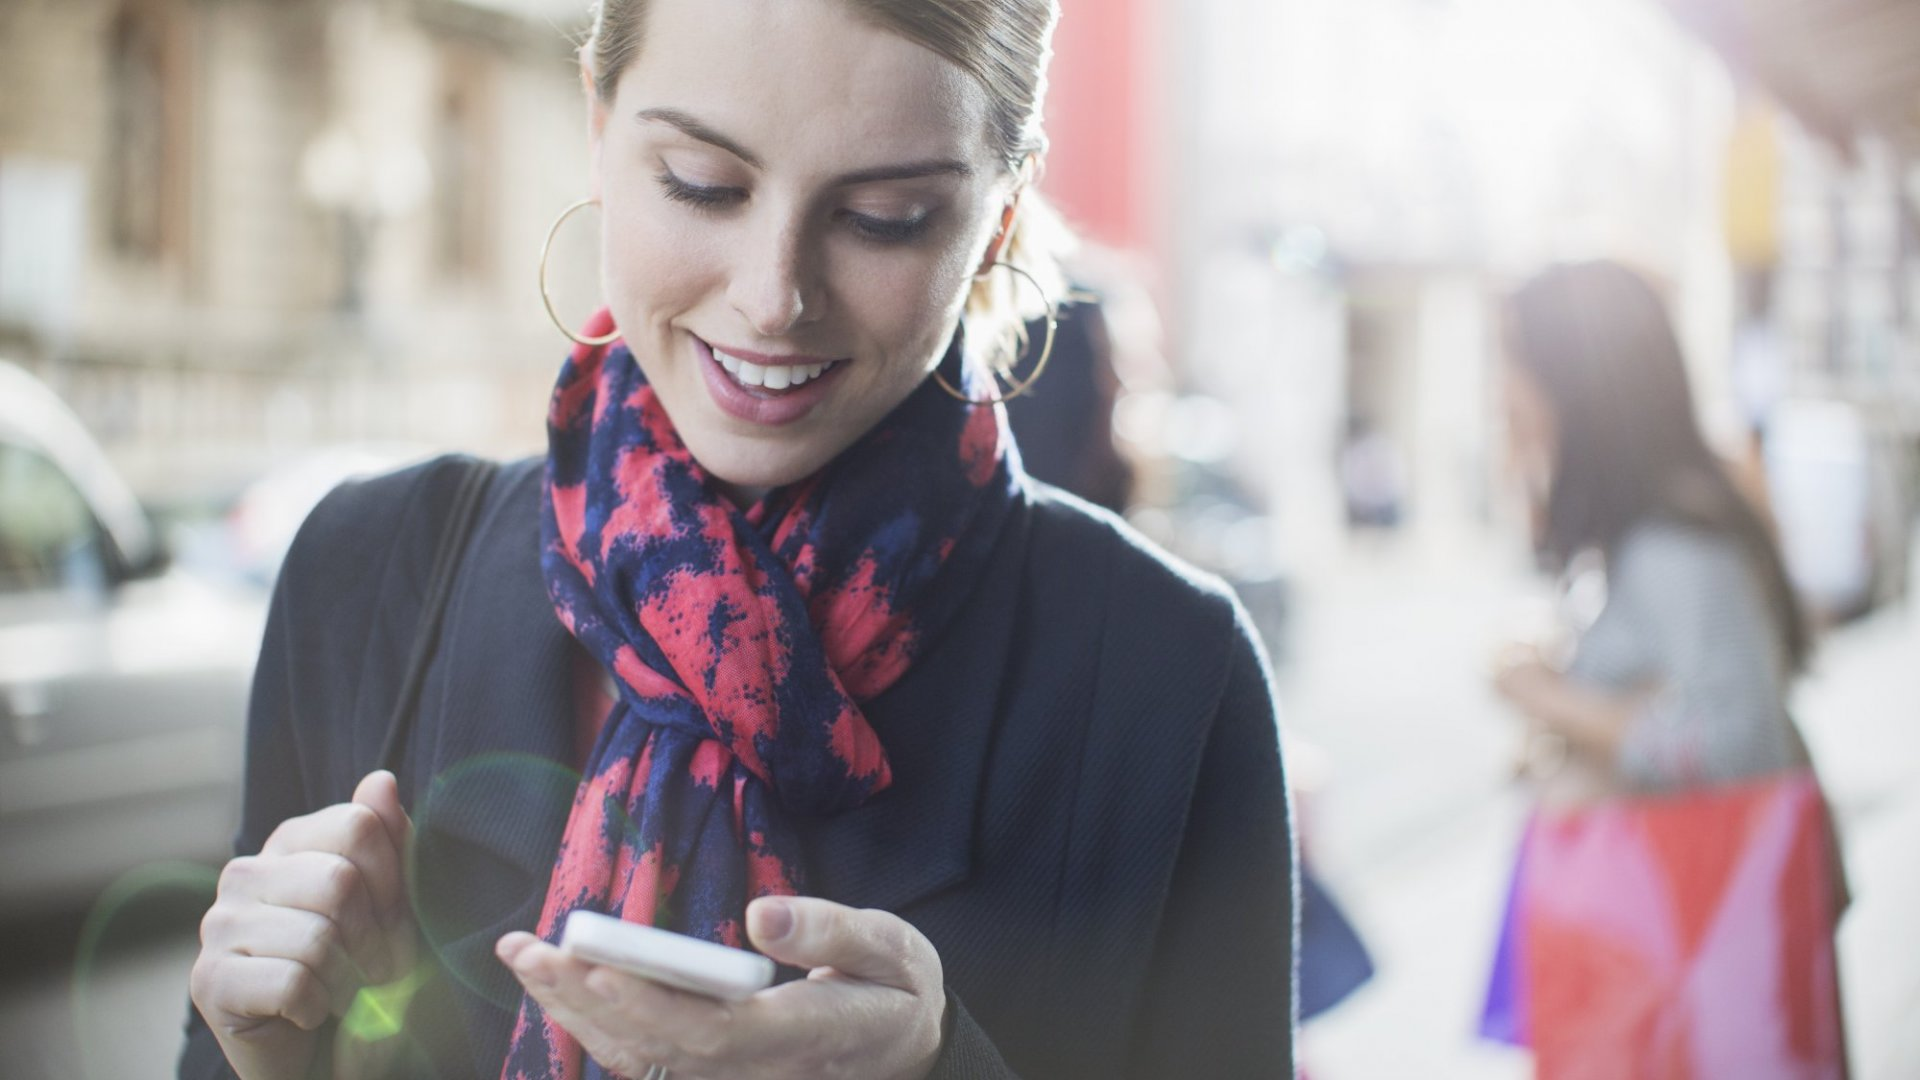 When It Comes To Recruiting, Texting May Be The Next Big Thing